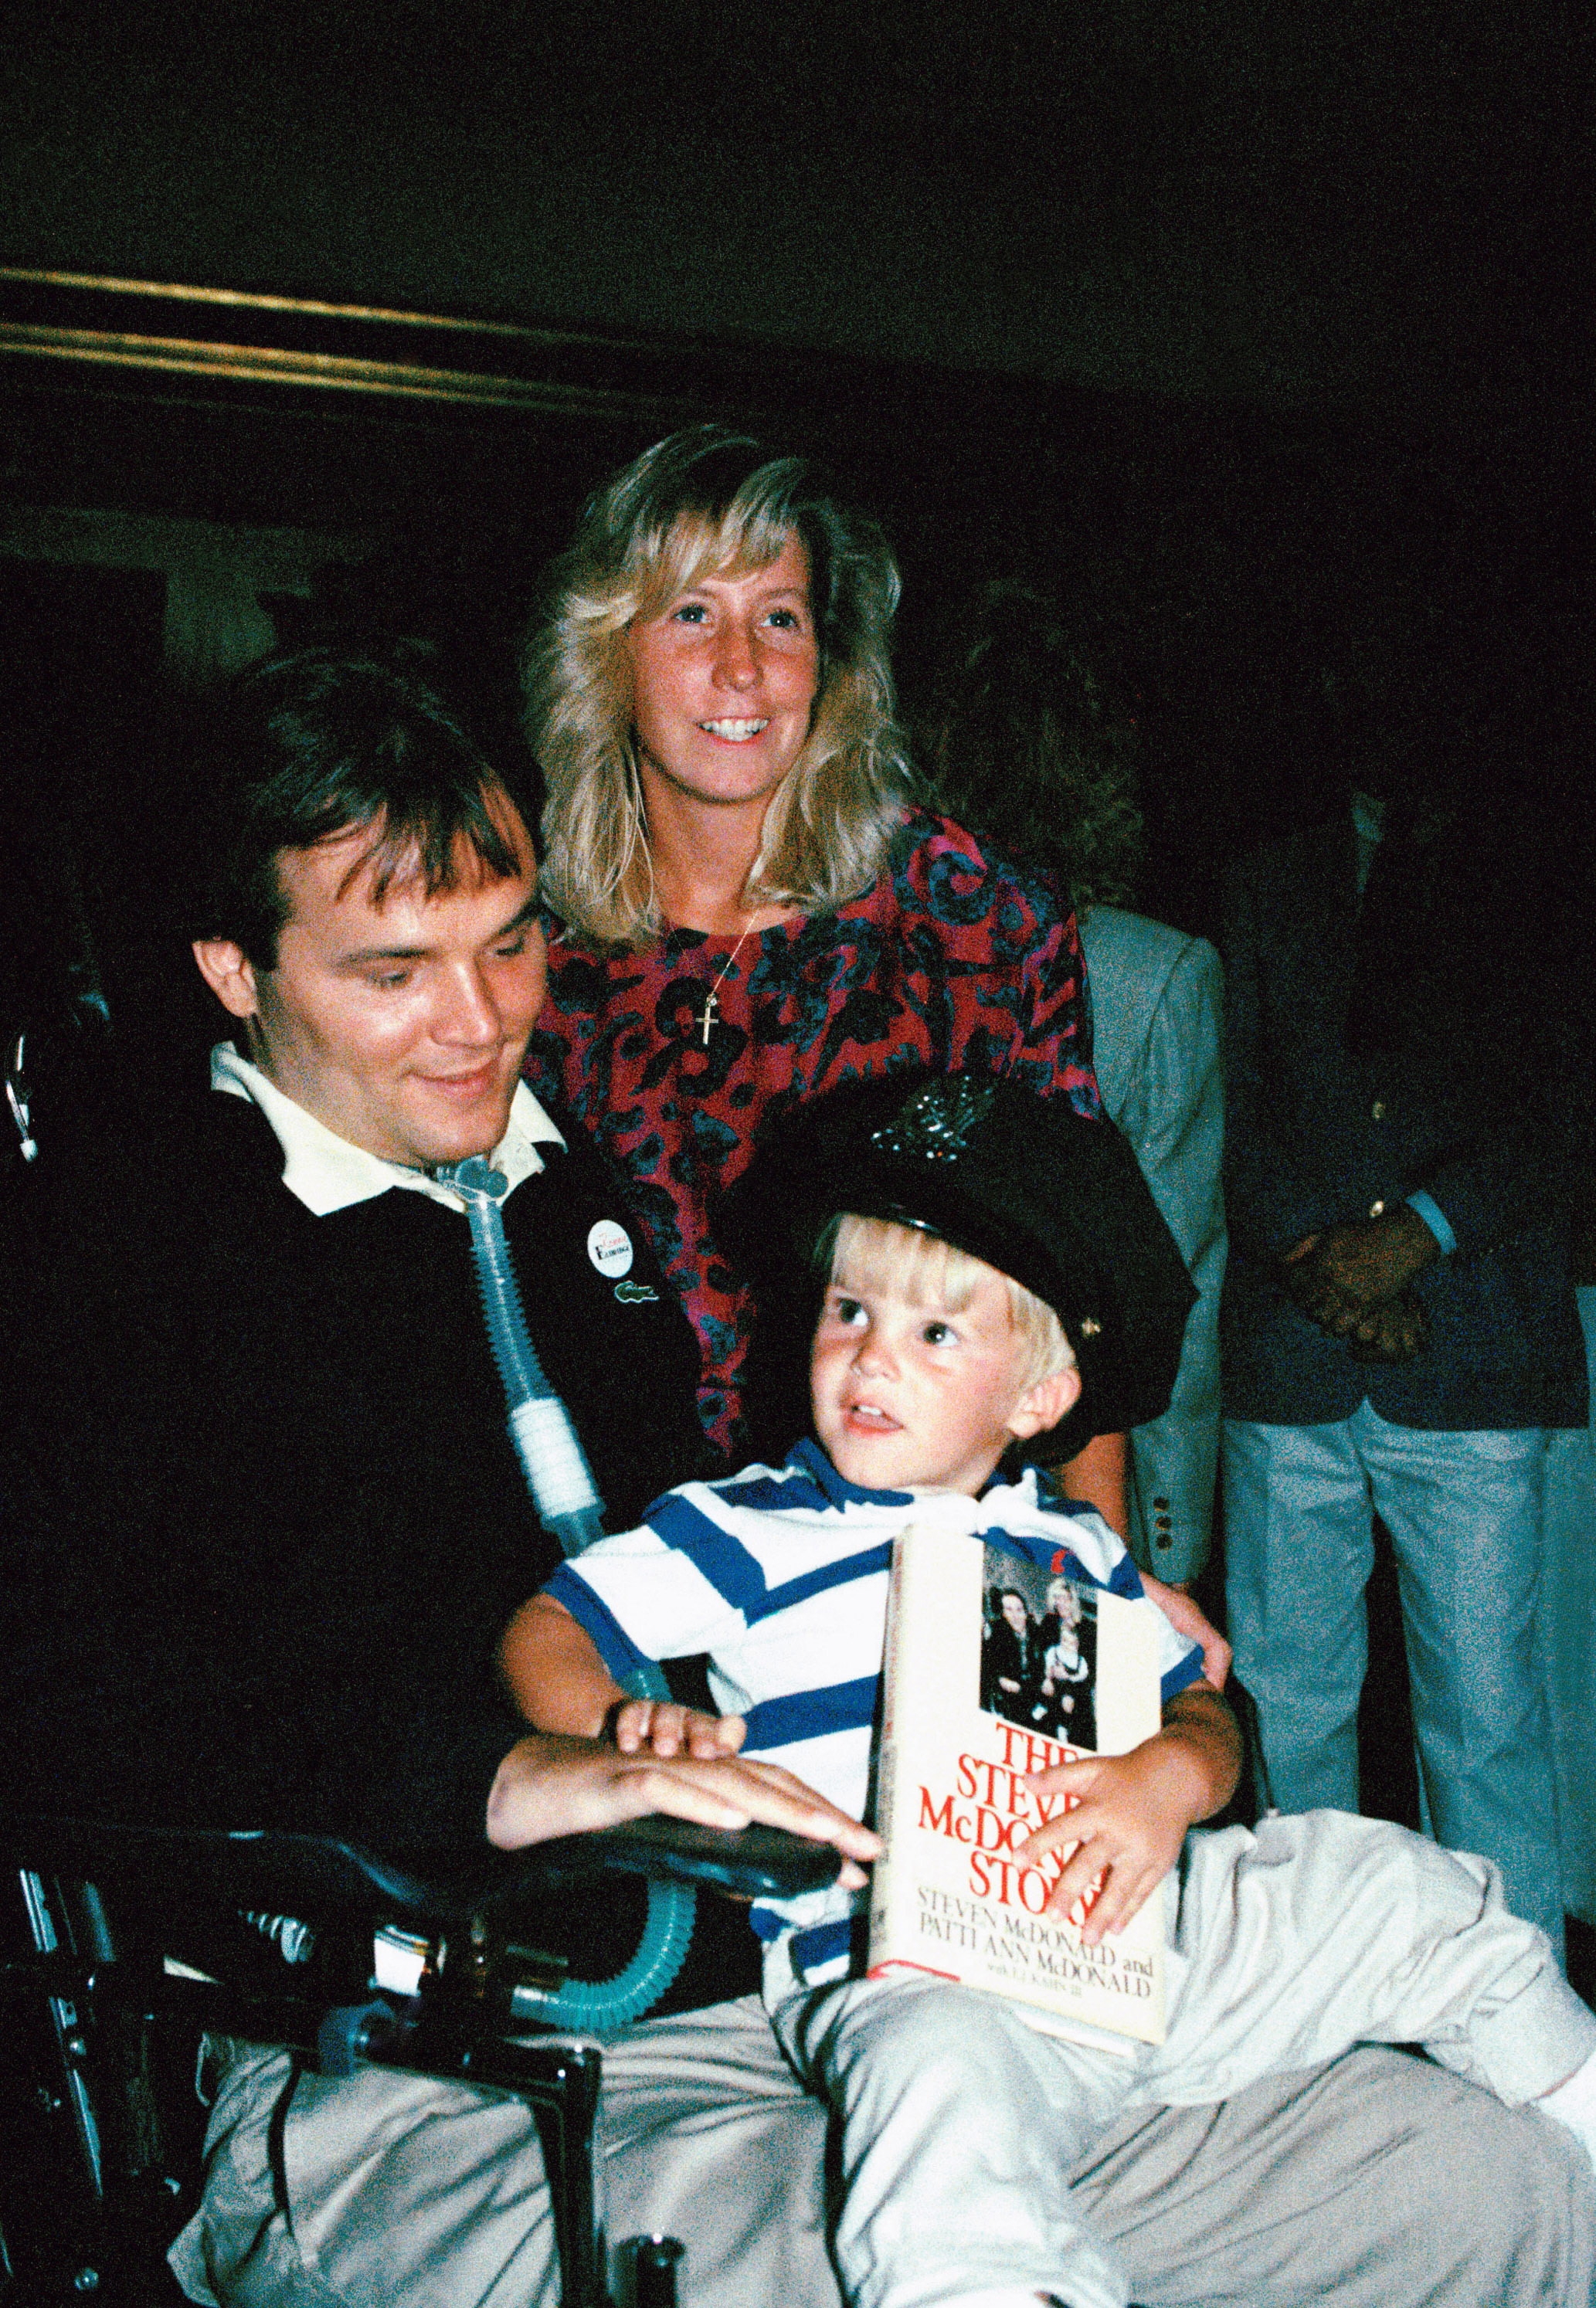 New York police detective Steven McDonald (L) with his wife Patti Ann and his son, Conor, at a party in New York on July 11, 1989. (AP Photo/Susan Ragan, File)